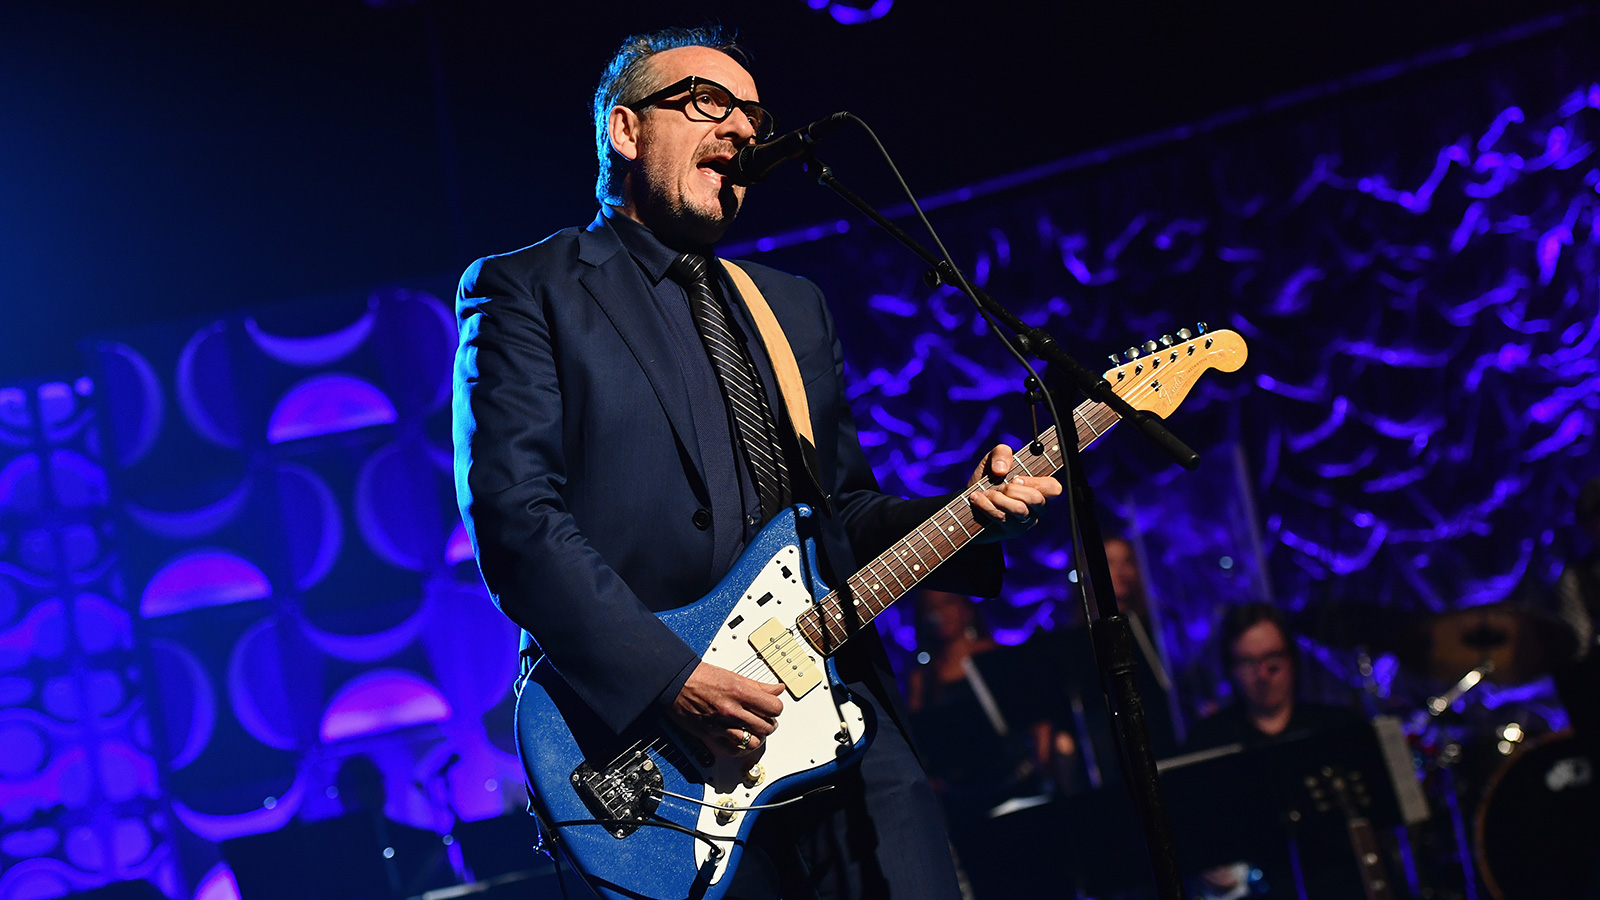 Elvis Costello dismisses claims Olivia Rodrigo plagiarized his music, saying that's rock and roll